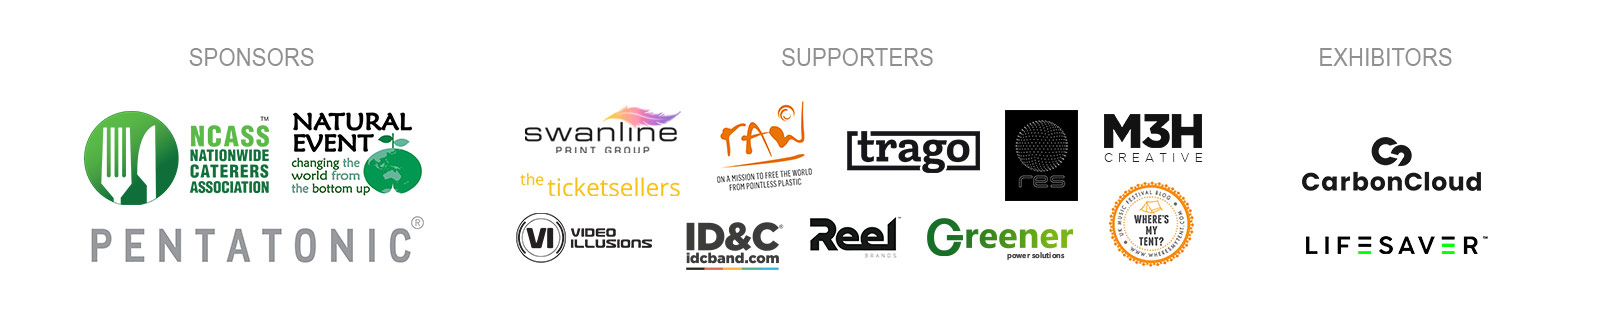 GEI11 Sponsors and Supporters Logos